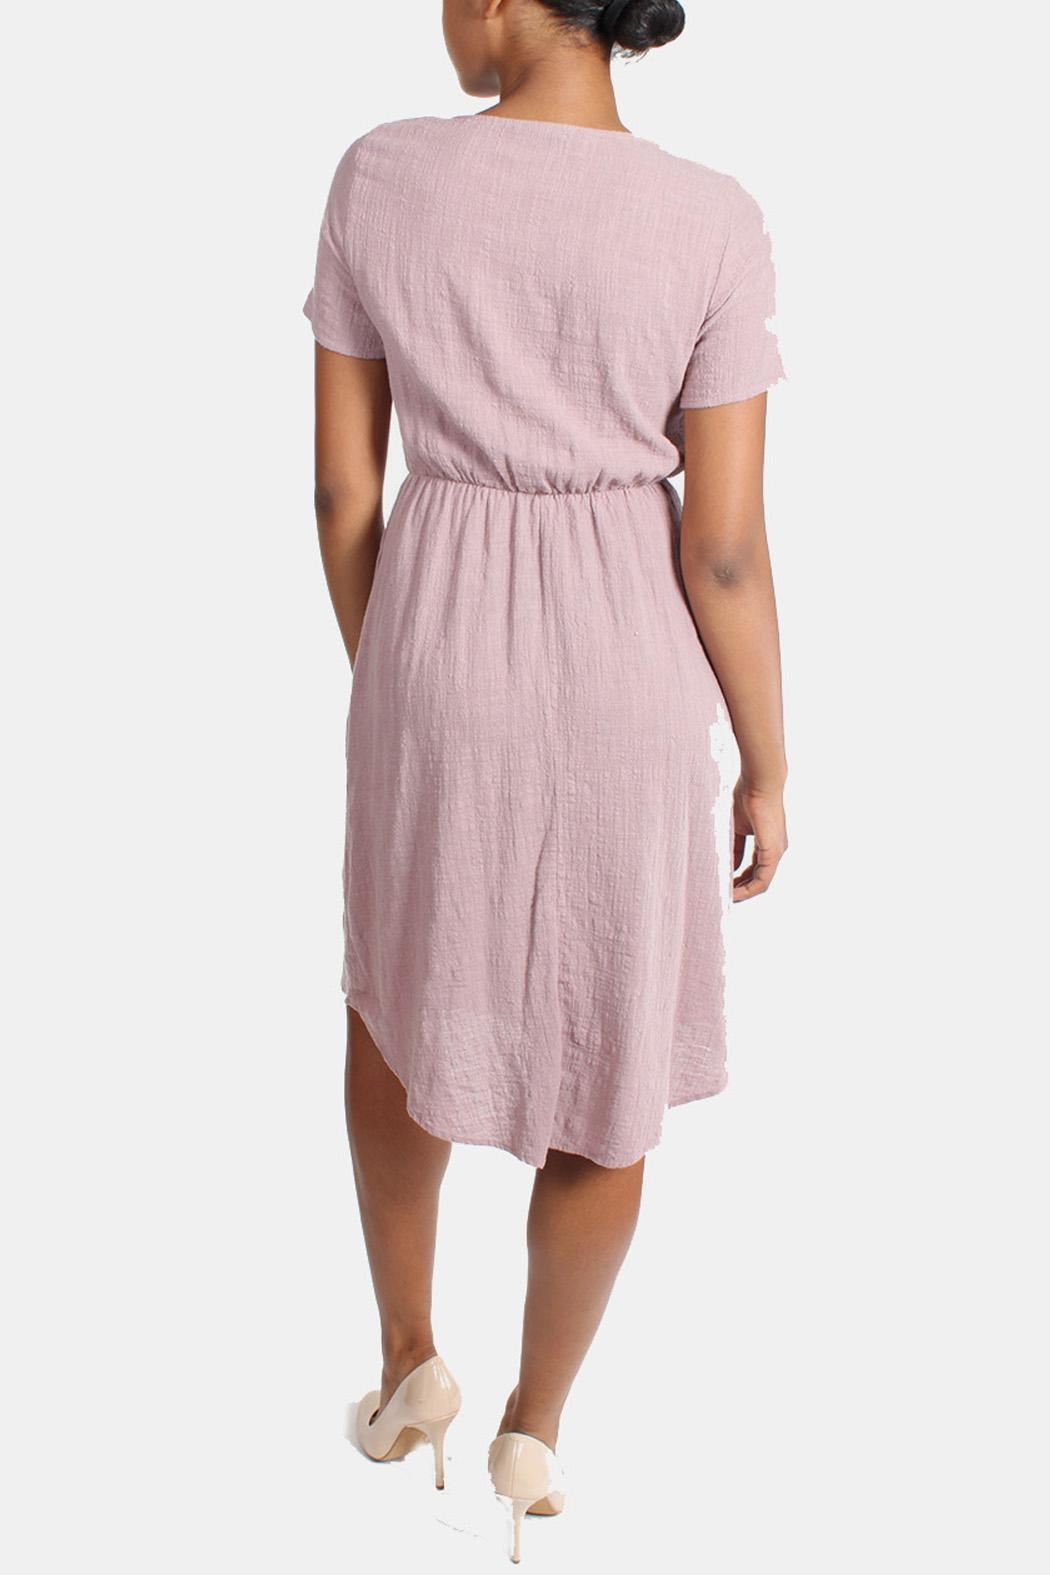 Final Touch Mauve Linen Dress - Side Cropped Image